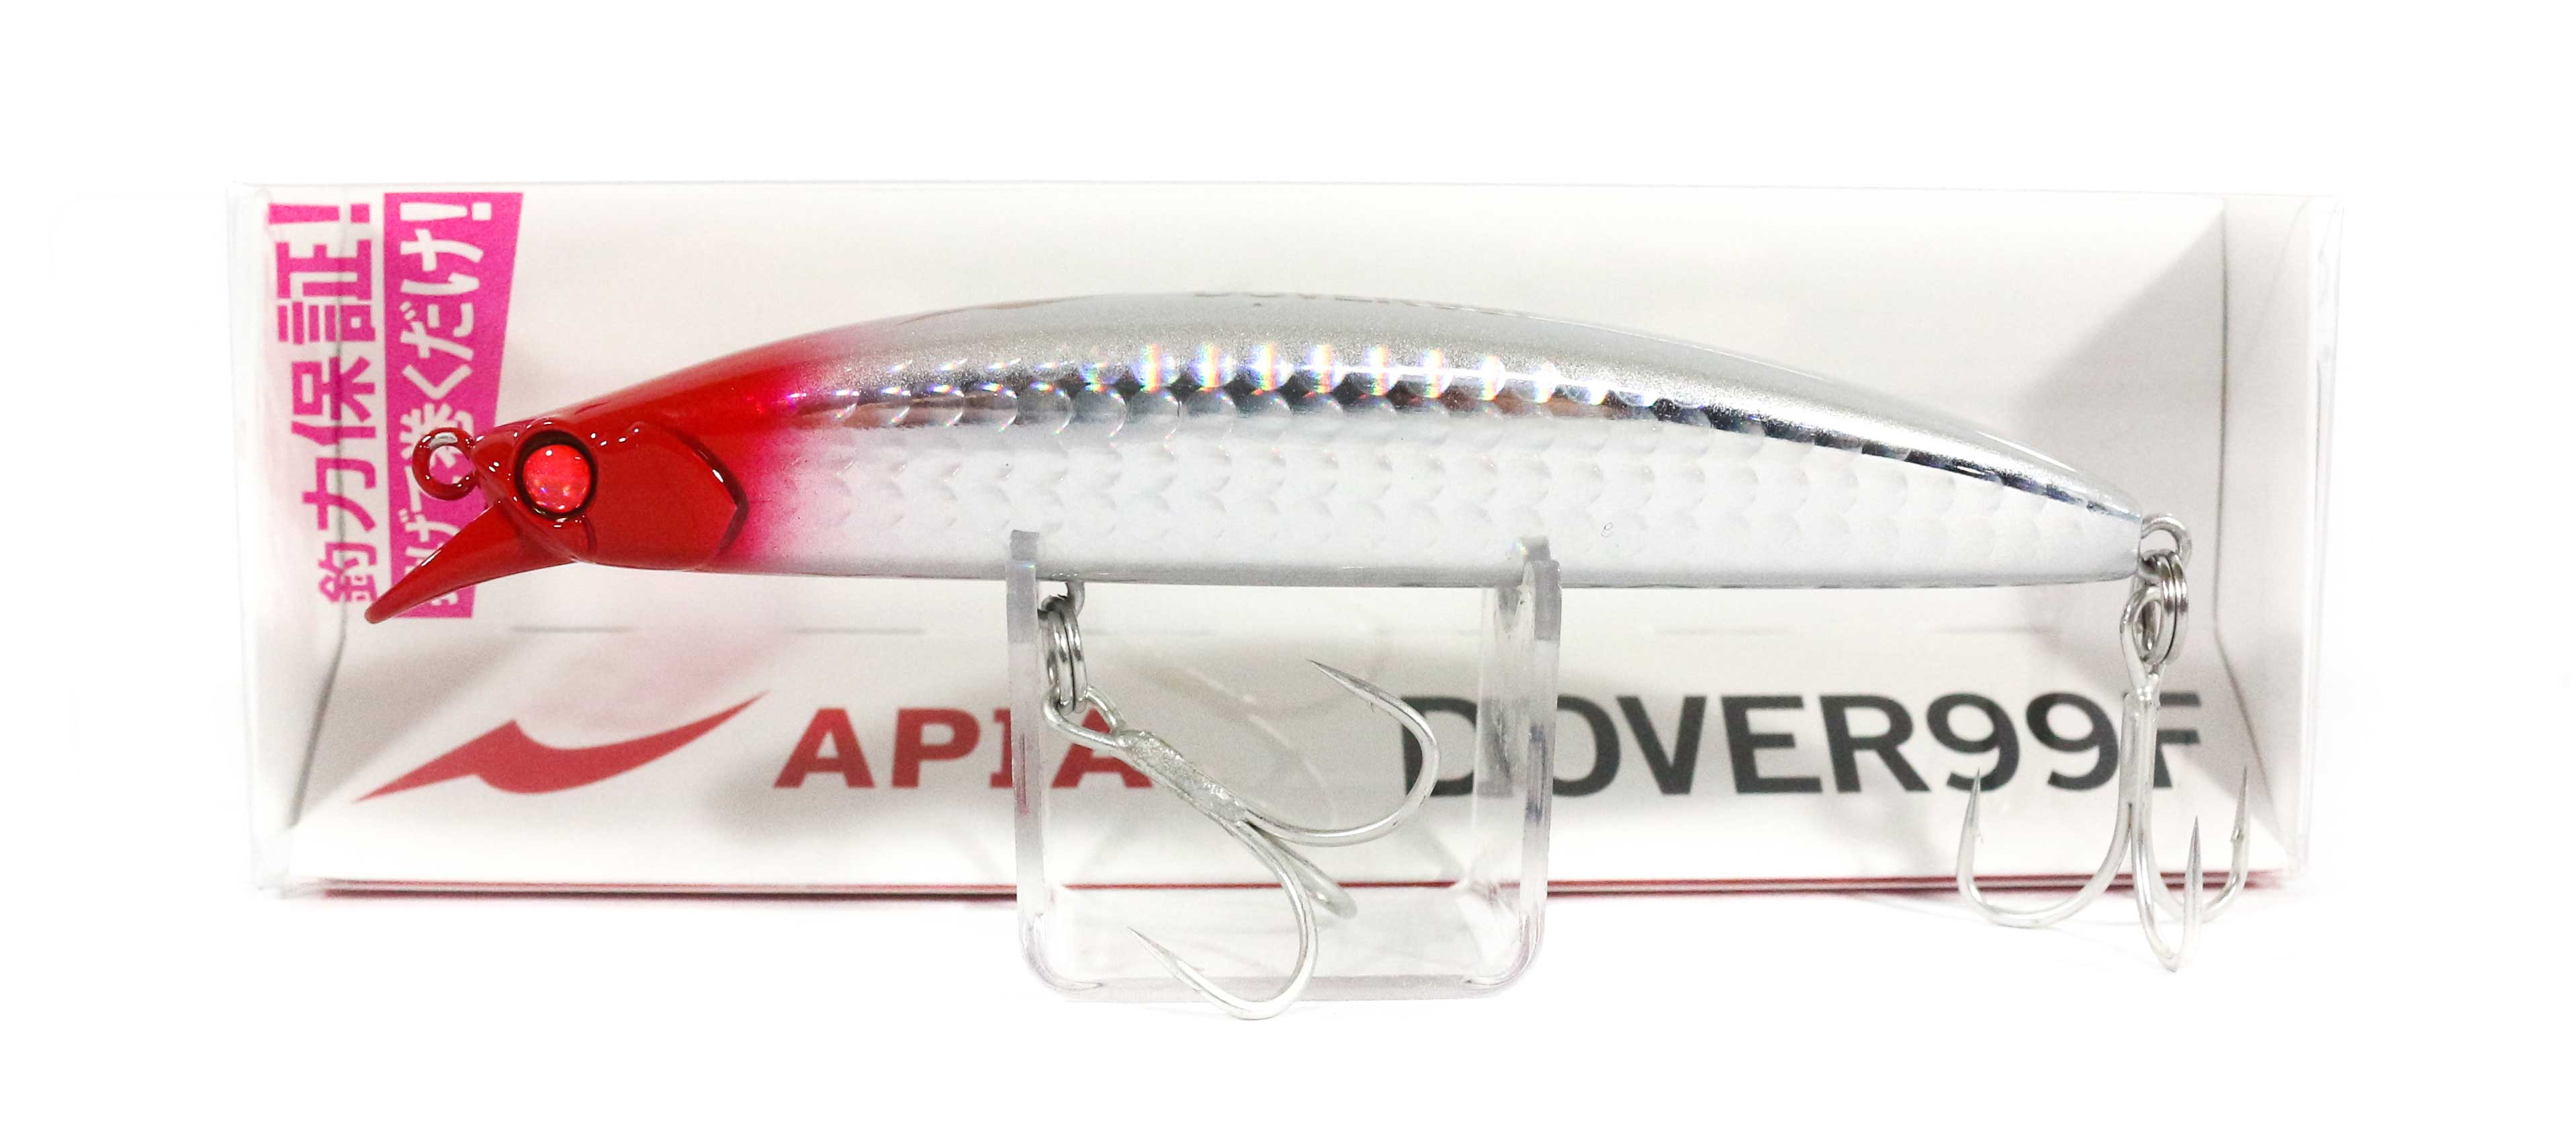 Apia Dover 99 F Floating Lure 02 (1383)